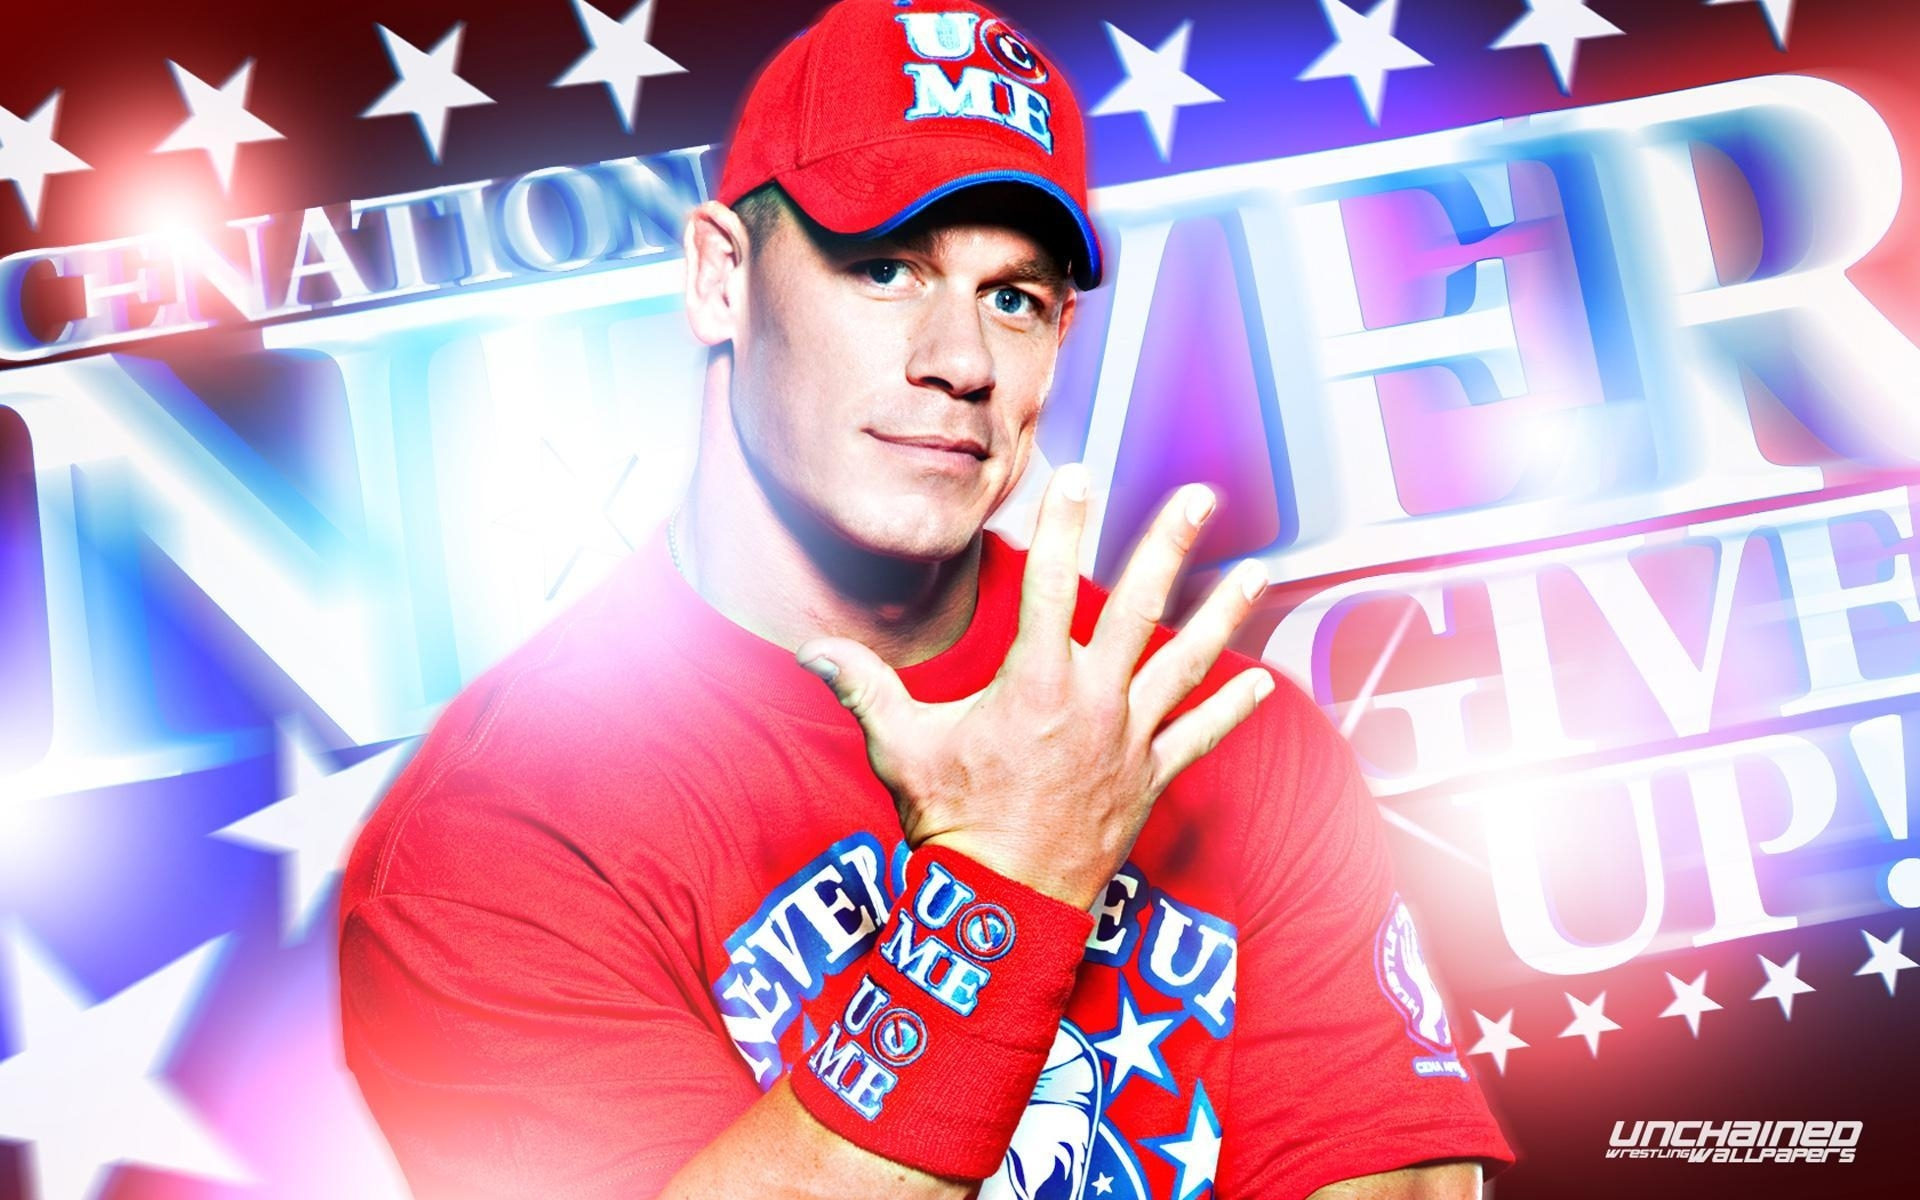 wwe john cena images group with 31 items